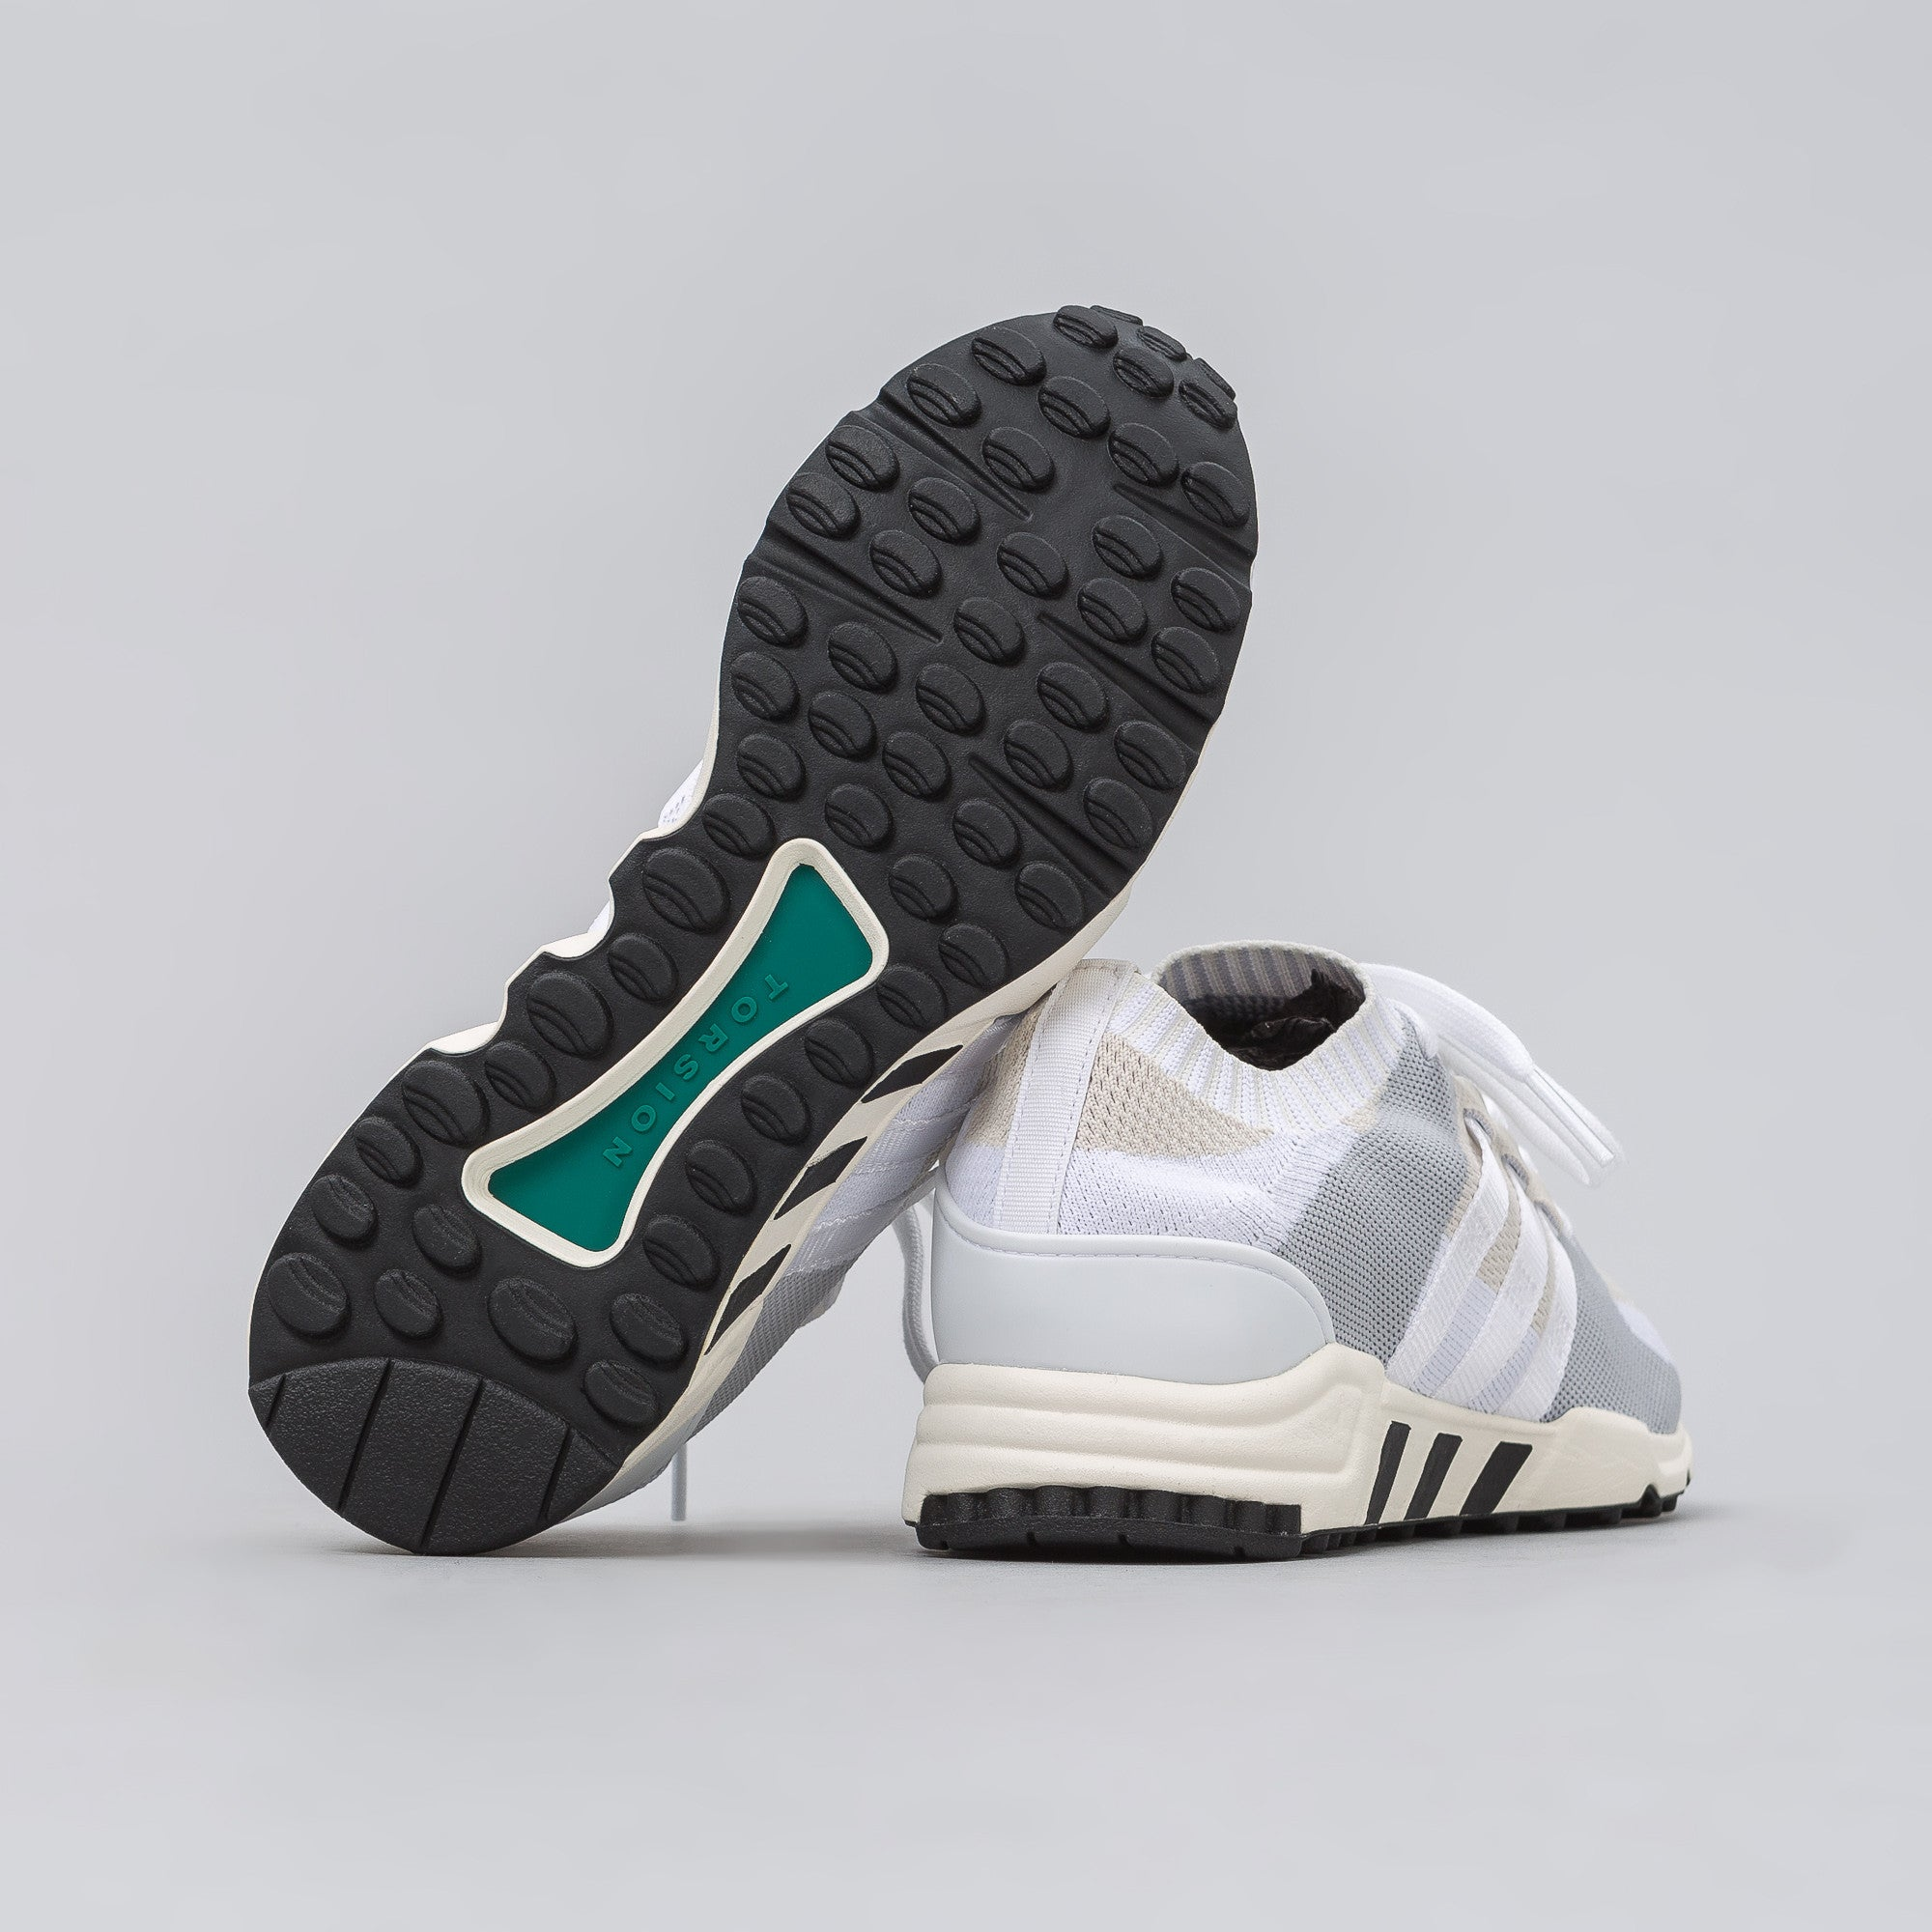 Concepts x adidas Equipment Support 93/16 Sneaker Freaker